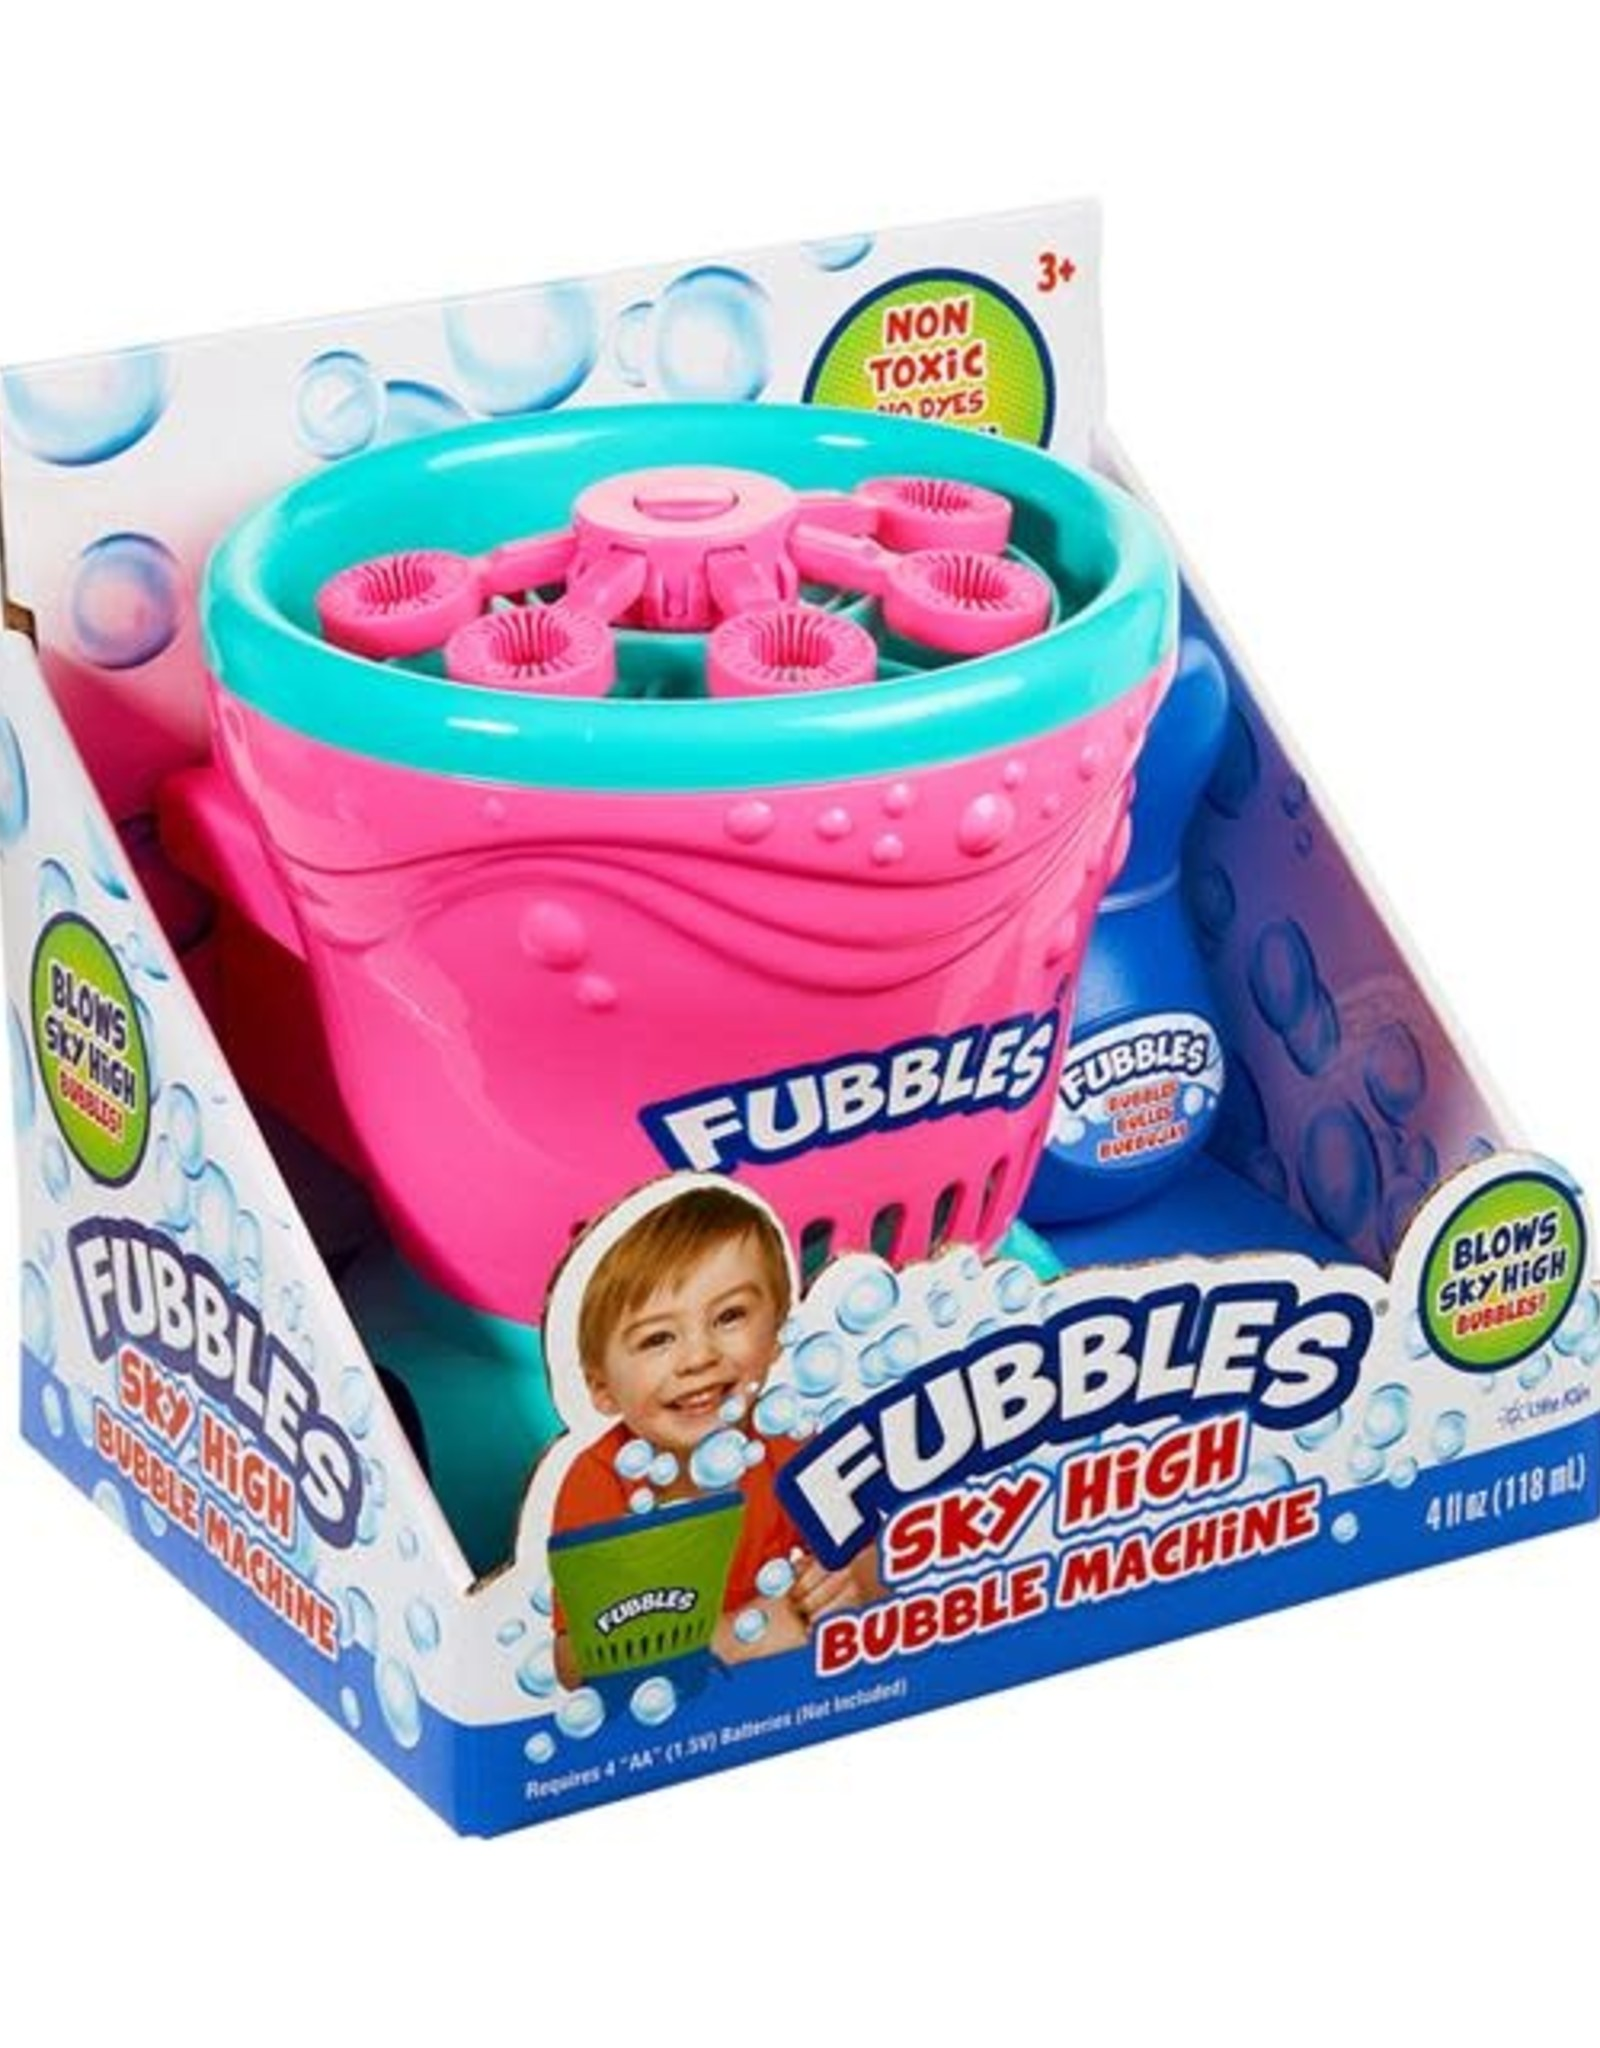 Little Kids Inc. Fubbles Sky High Bubble Machine